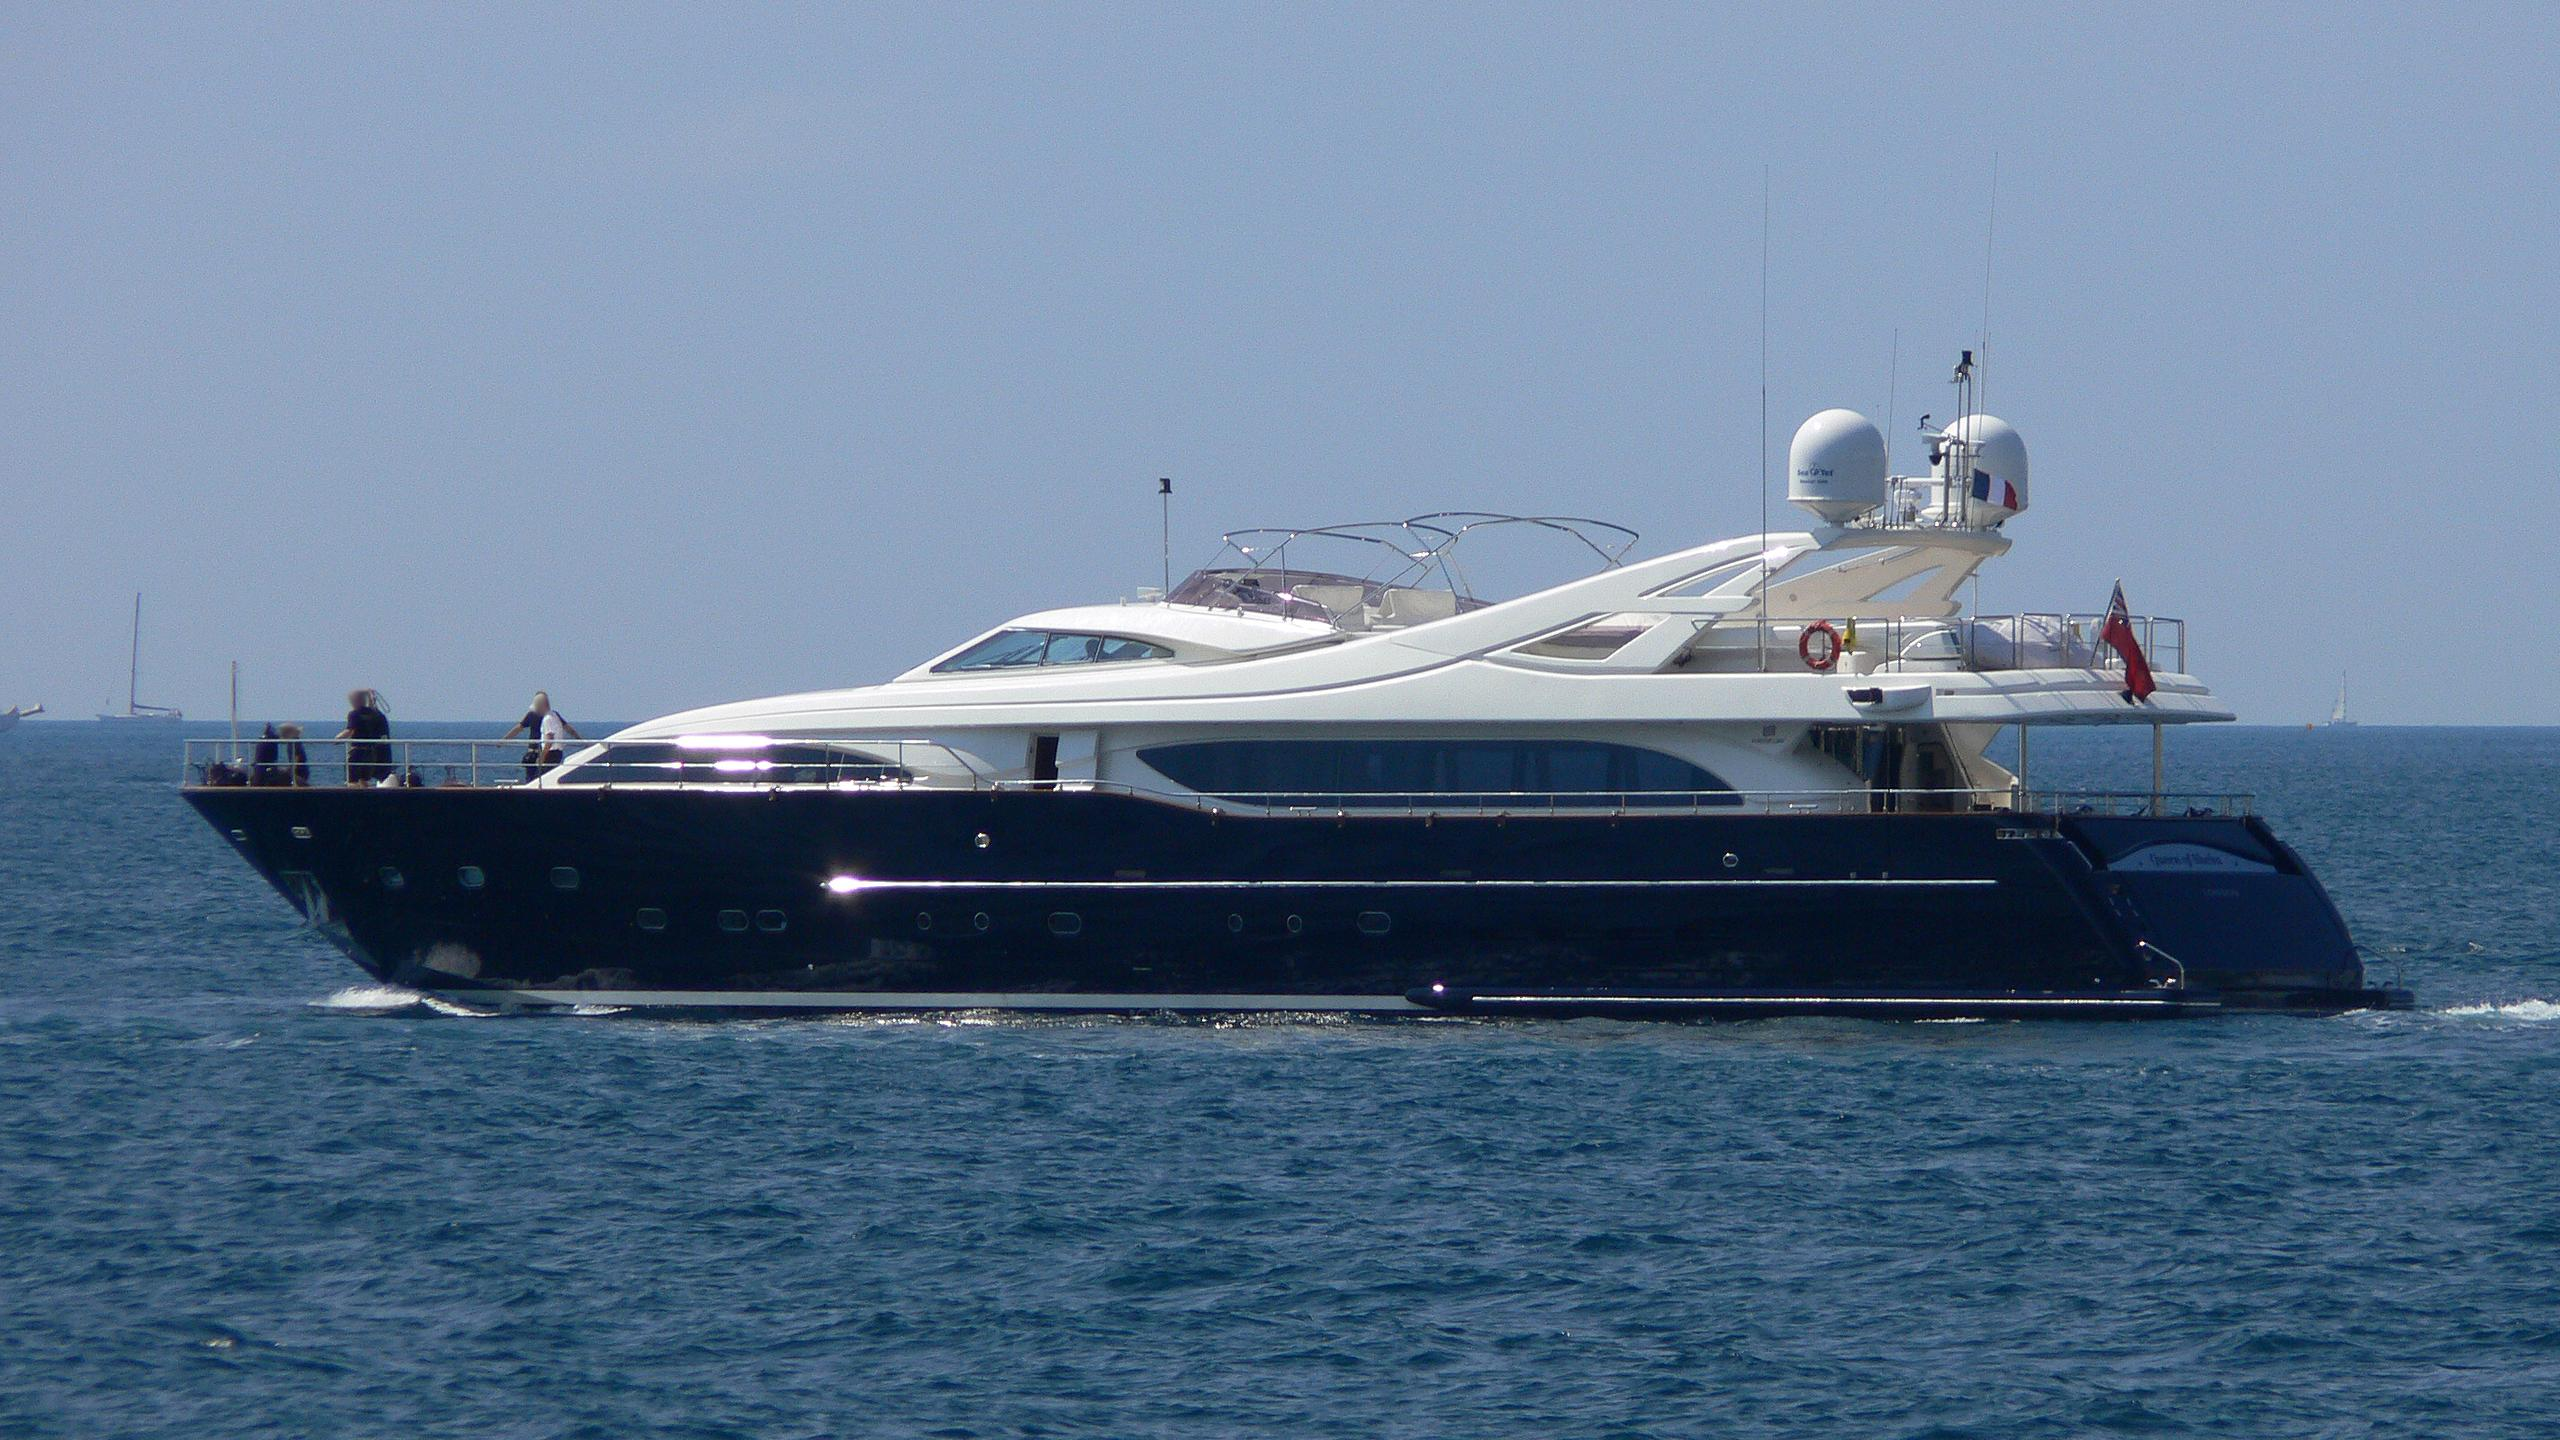 queen-of-sheba-yacht-exterior